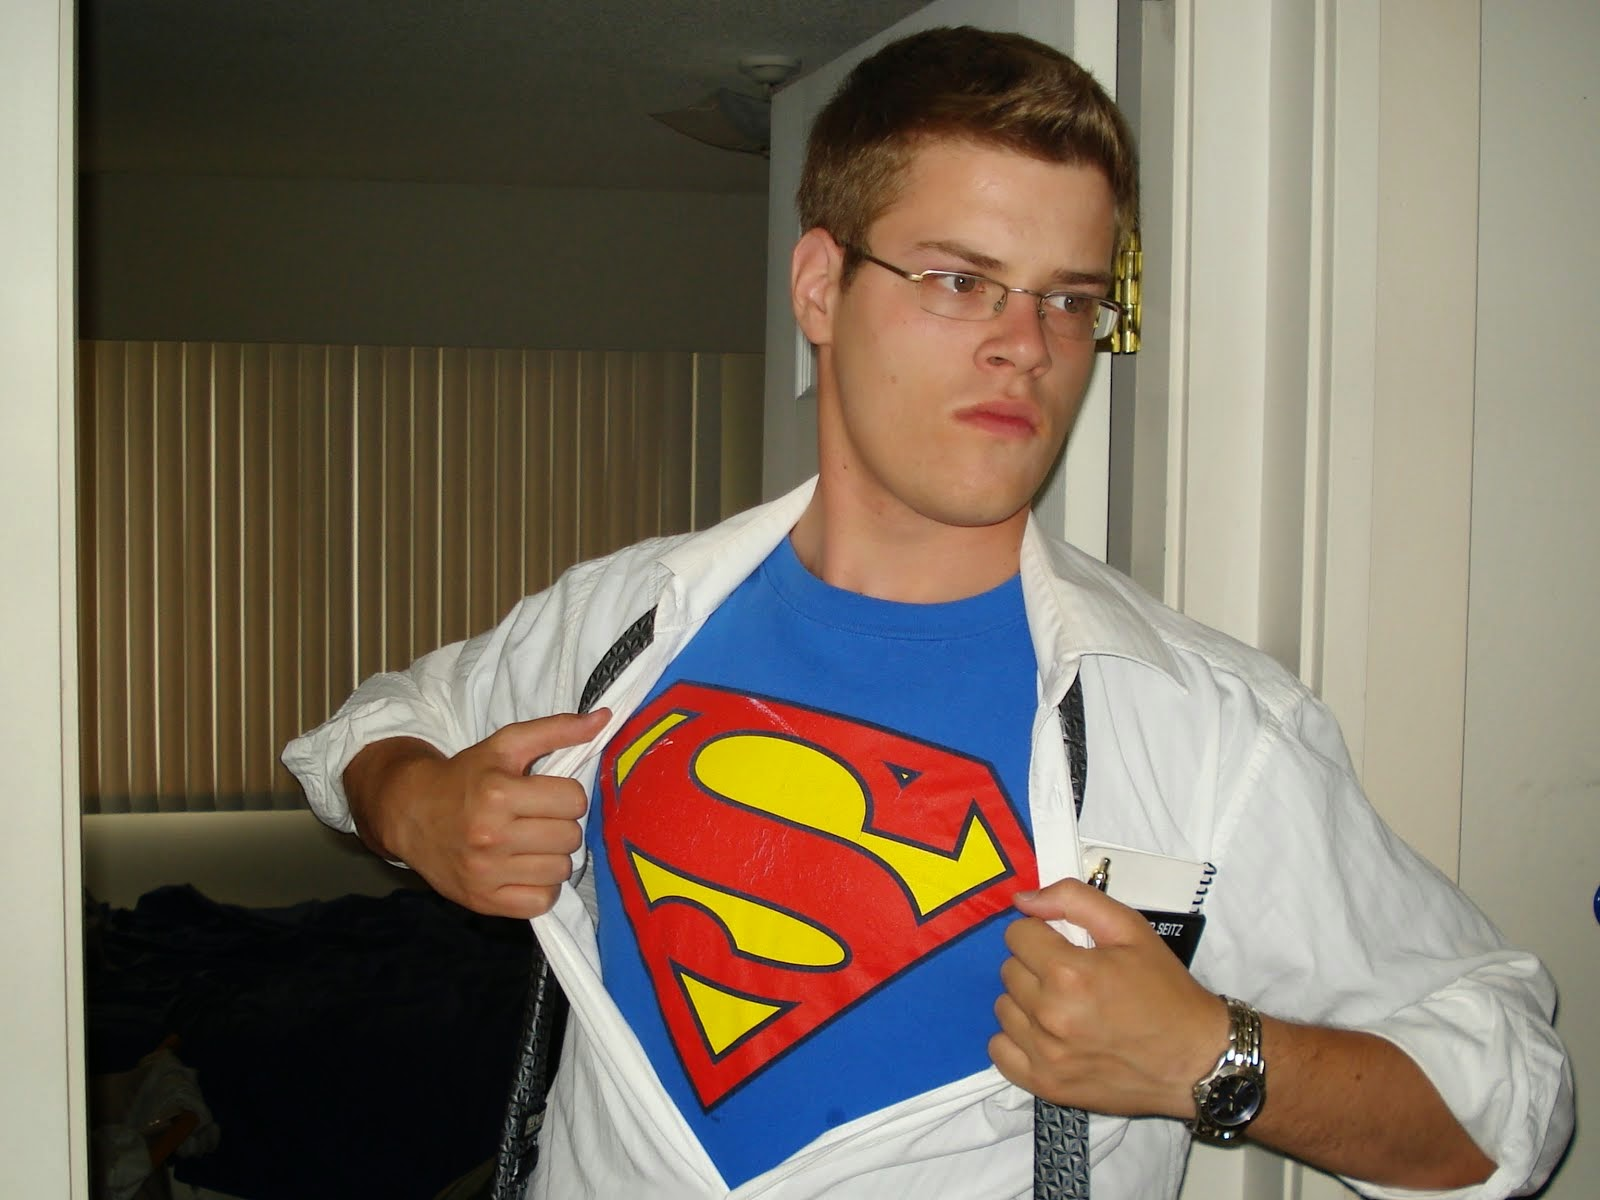 Yes! I am Superman!